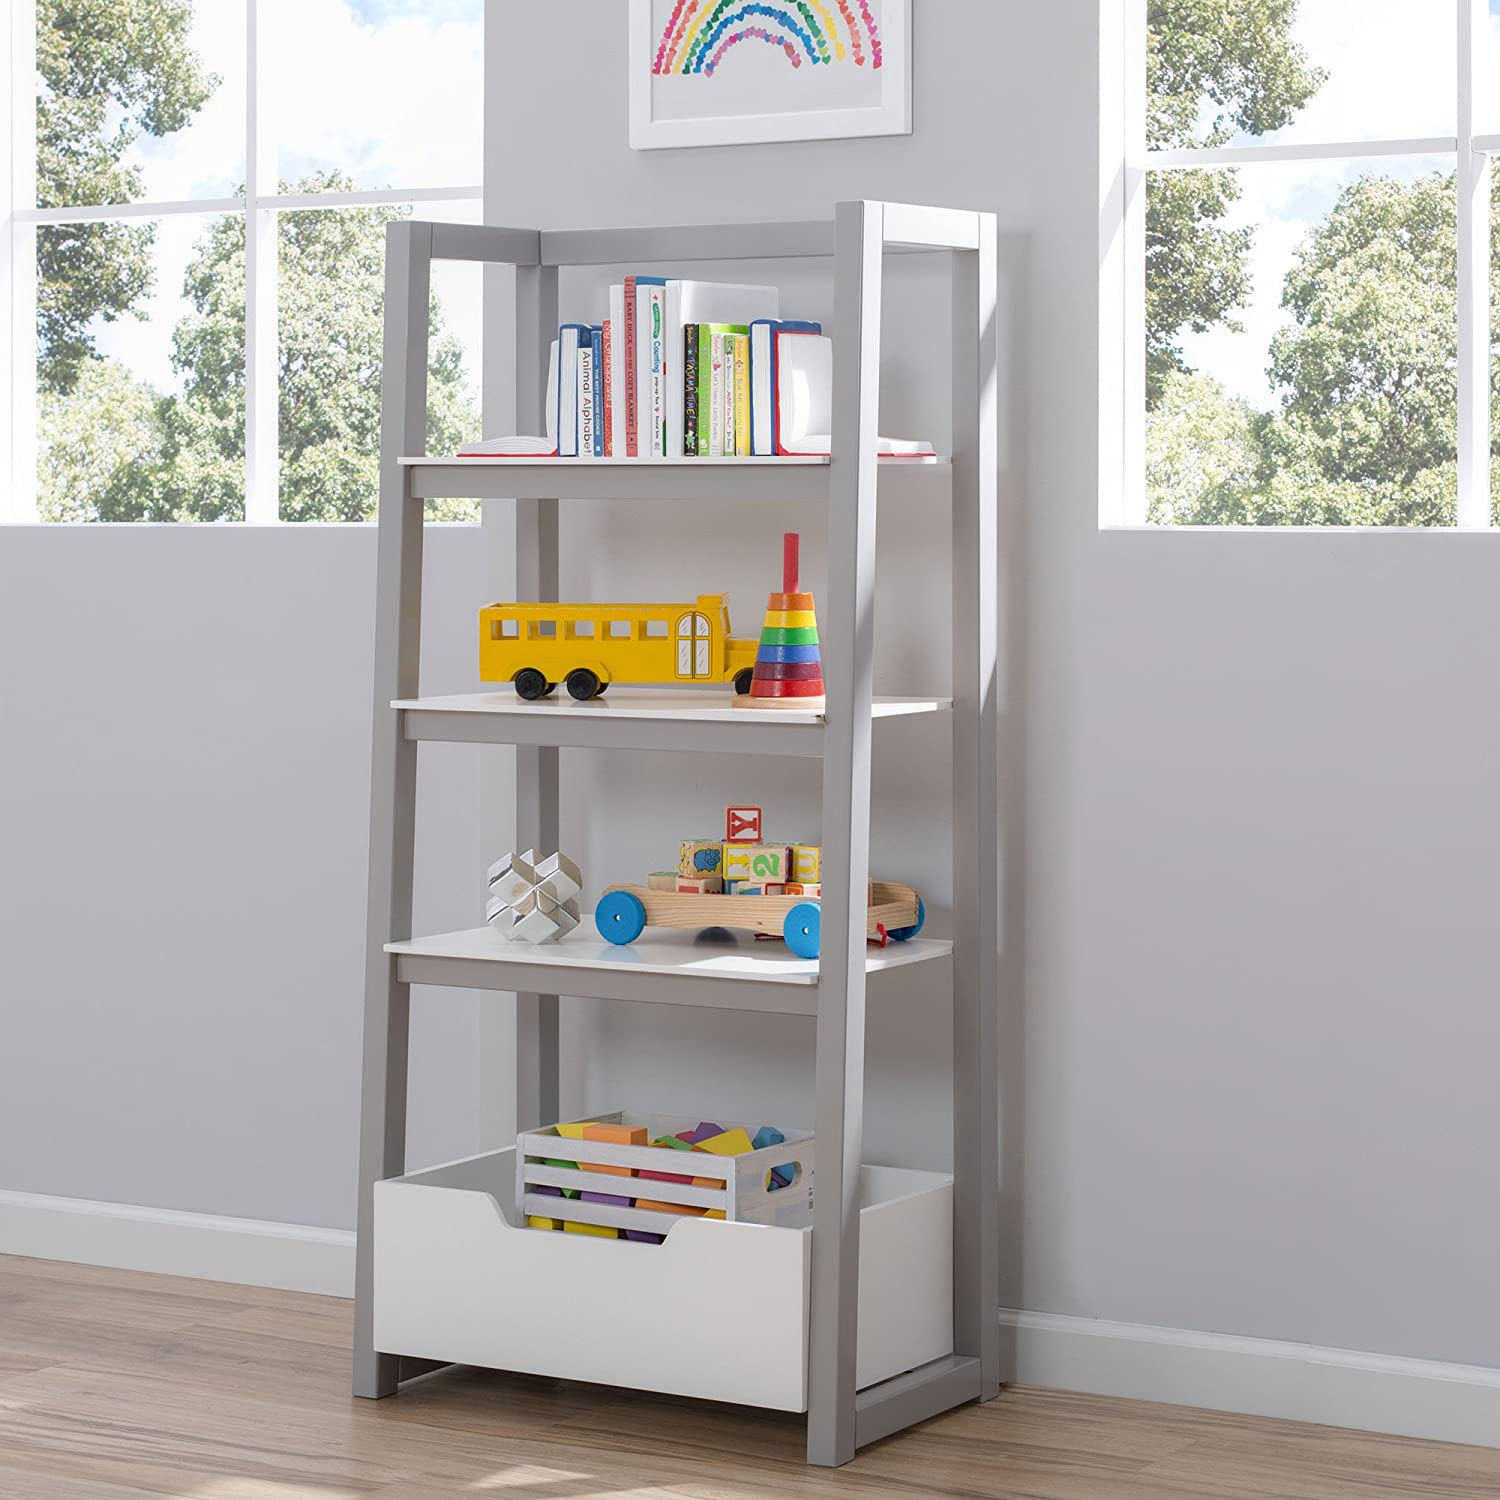 bookshelves tidy bookcase range books original s winning bookcases kid children the award kids